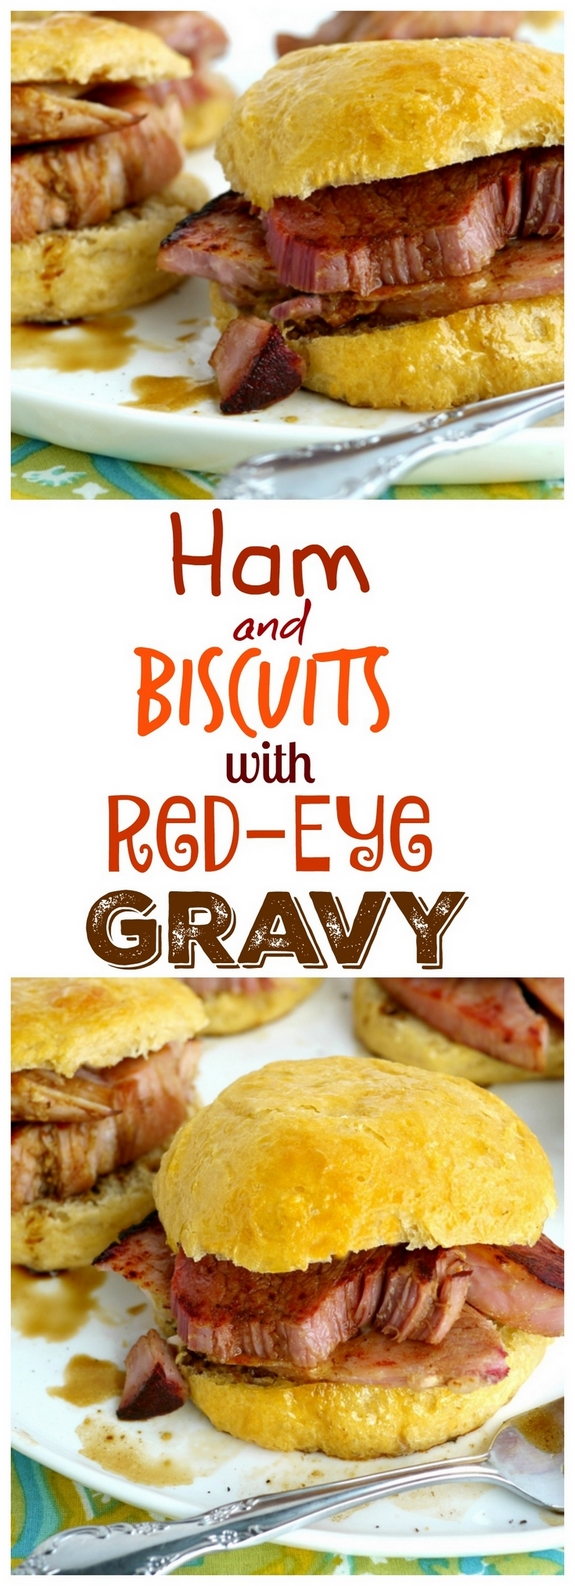 Ham and Biscuits with Red-Eye Gravy